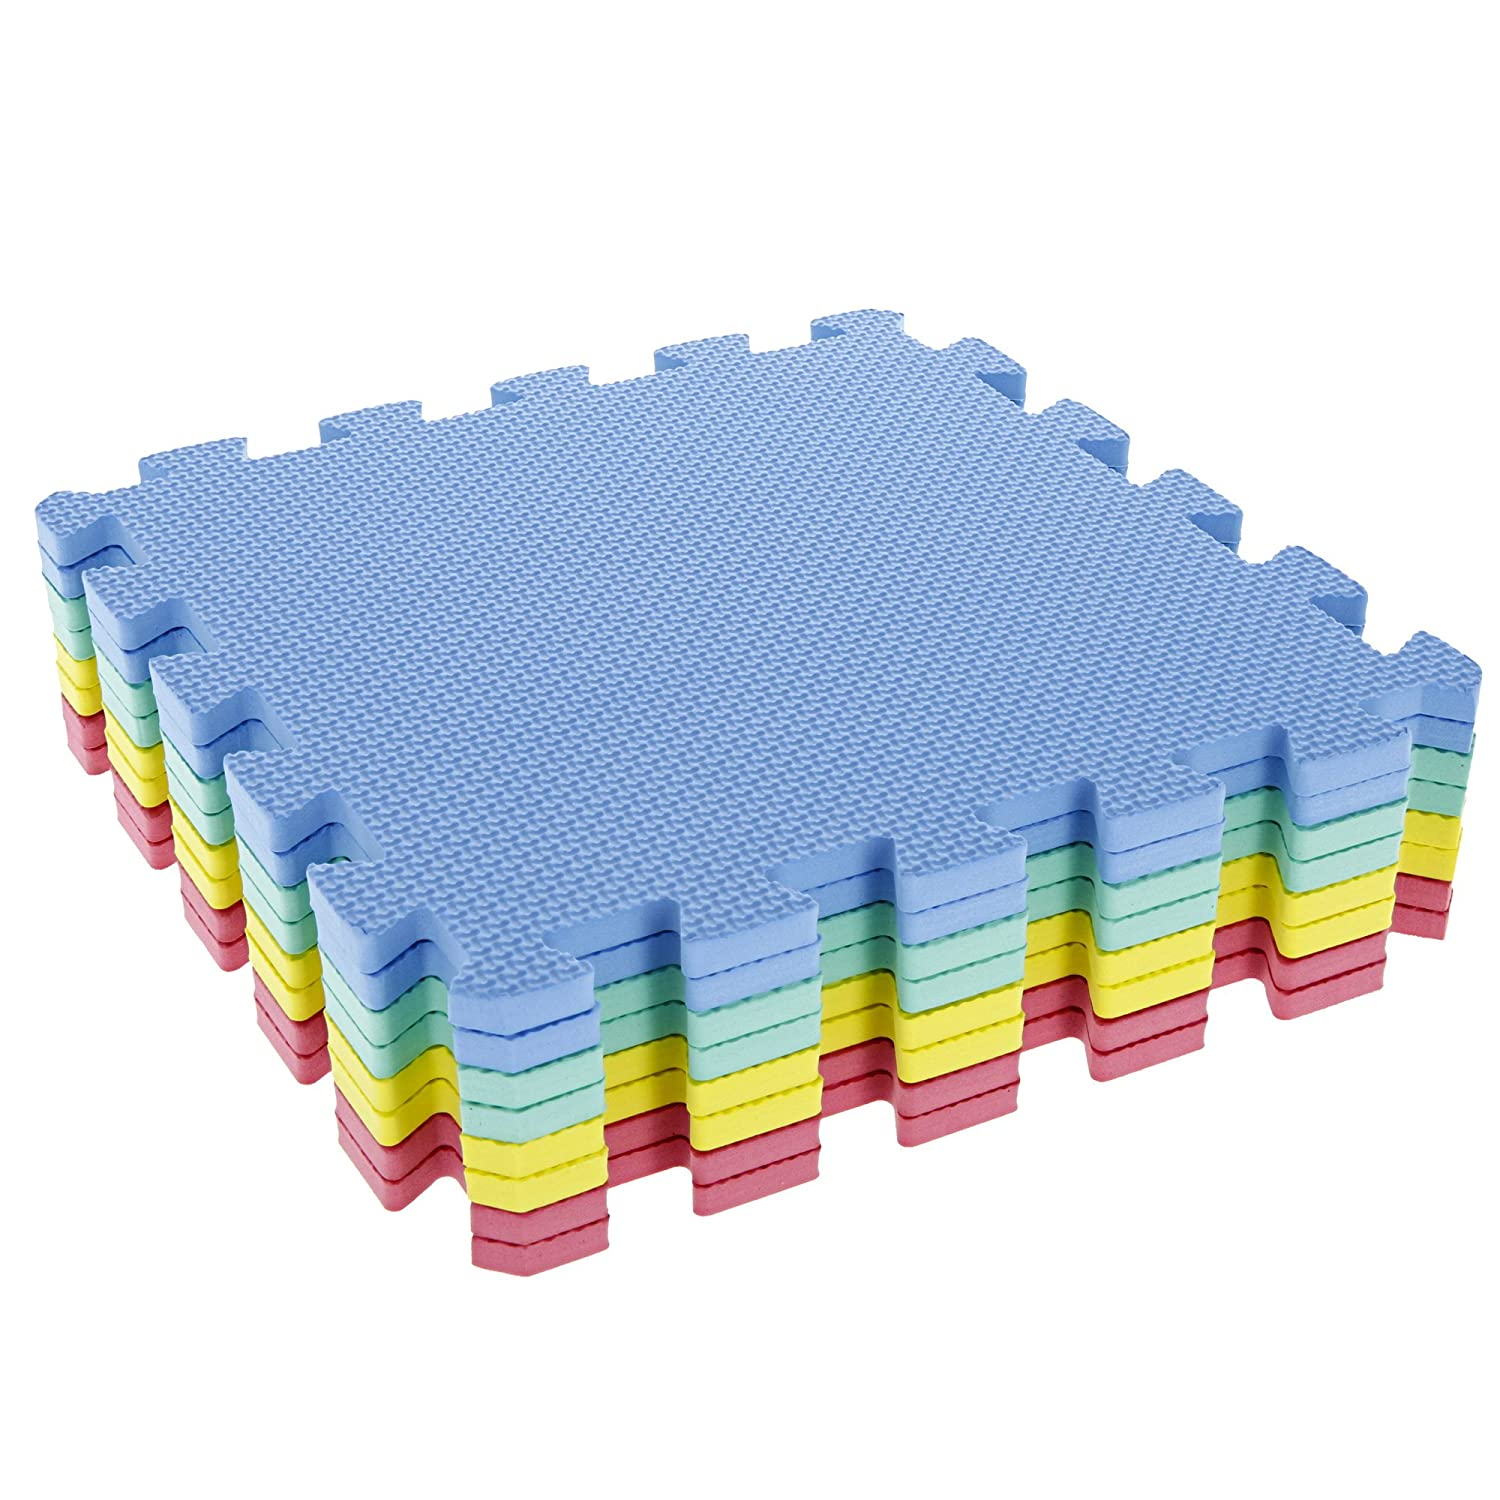 Tg Foam Mat Floor Tiles Interlocking Eva Foam Padding By Stalwart A Soft Flooring For Exercising Yoga Camping Kids Babies Playroom A 8 Piece Set Amazon In Toys Games